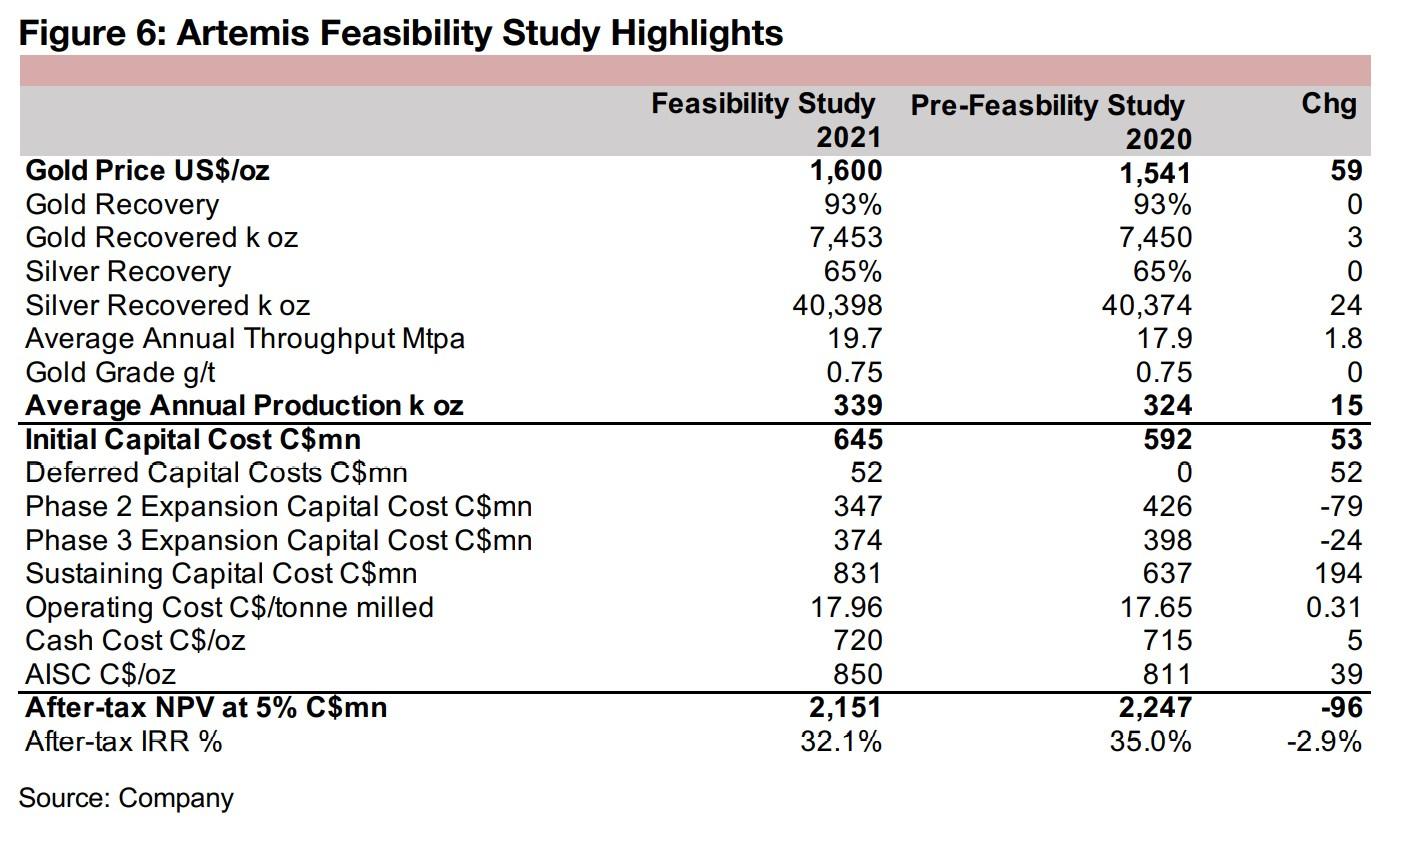 Limited changed in Artemis's Feasibility Study for Blackwater versus PFS